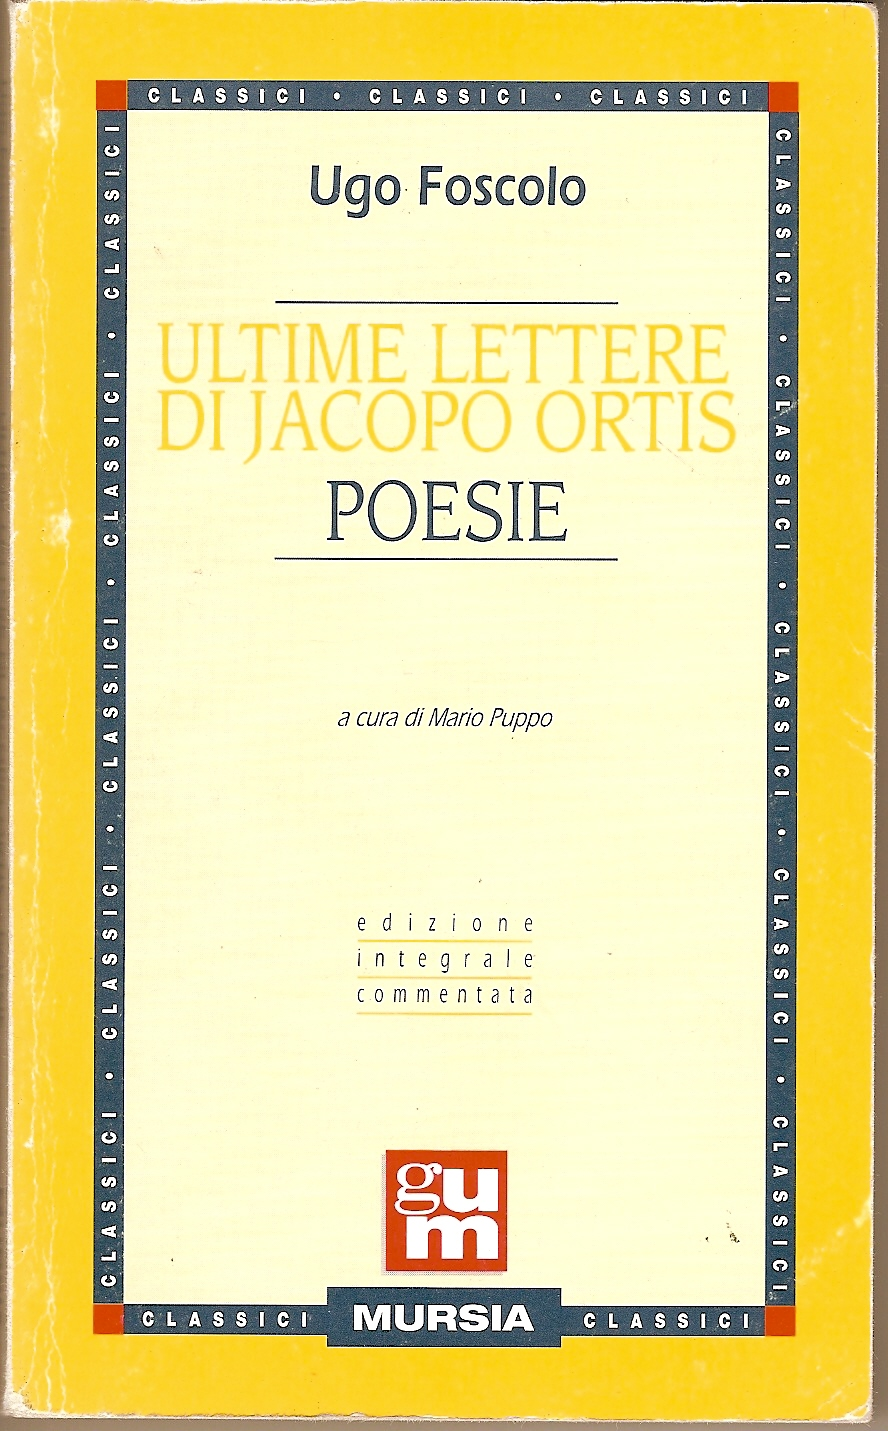 Ultime lettere di Jacopo Ortis - Poesie